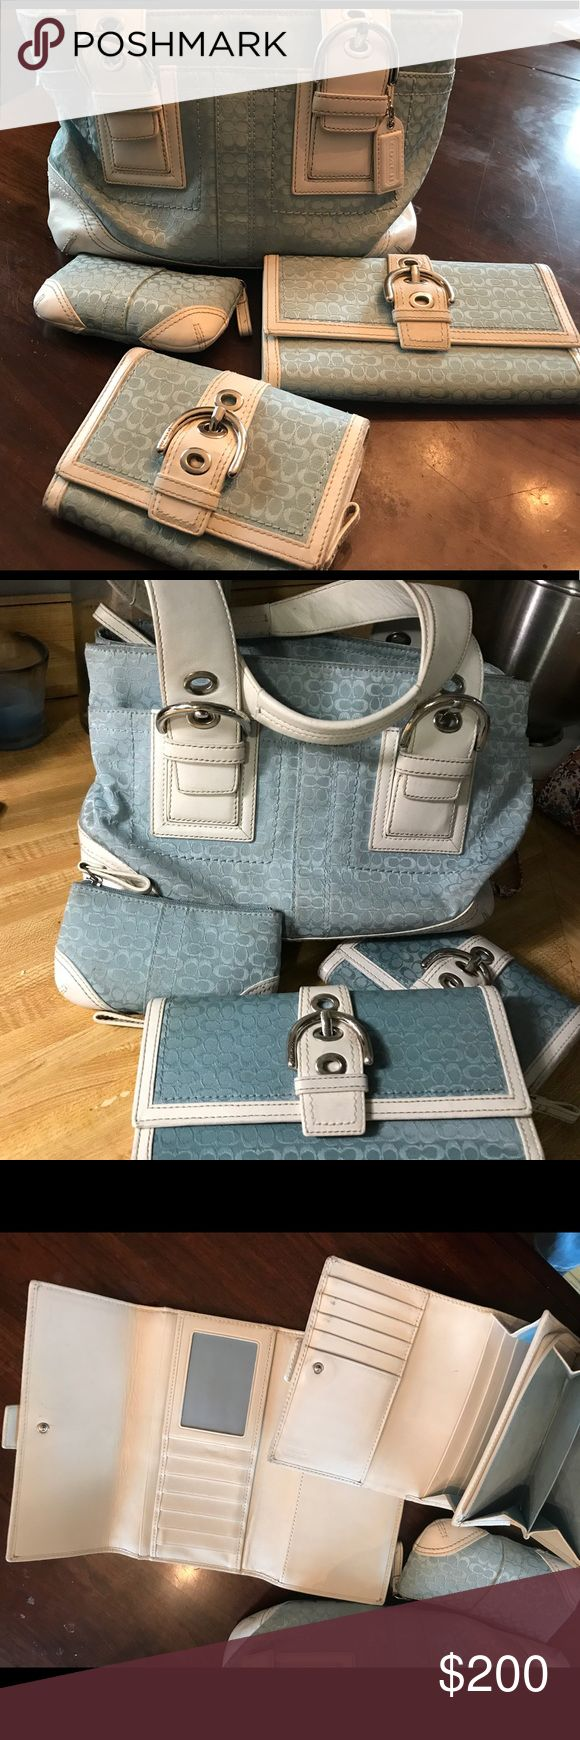 Coach Purse Set Light blue and white purse, checkbook trifold, wallet, and change purse. In great used condition. Exterior just cleaned Coach Bags Shoulder Bags